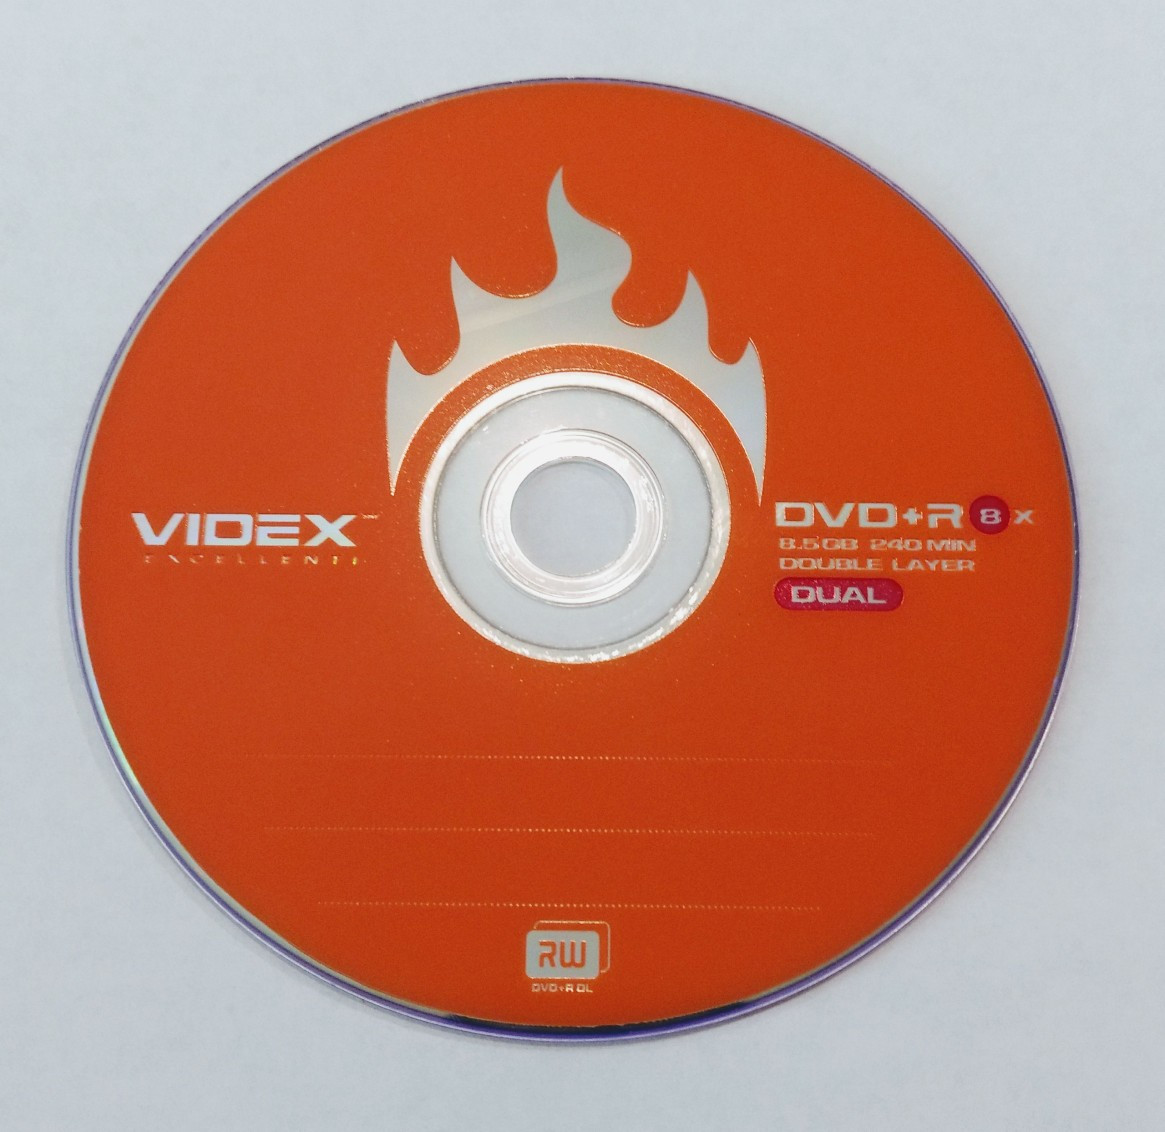 Диск DVD+R 8x Videx 8GB 240 min double layer dual